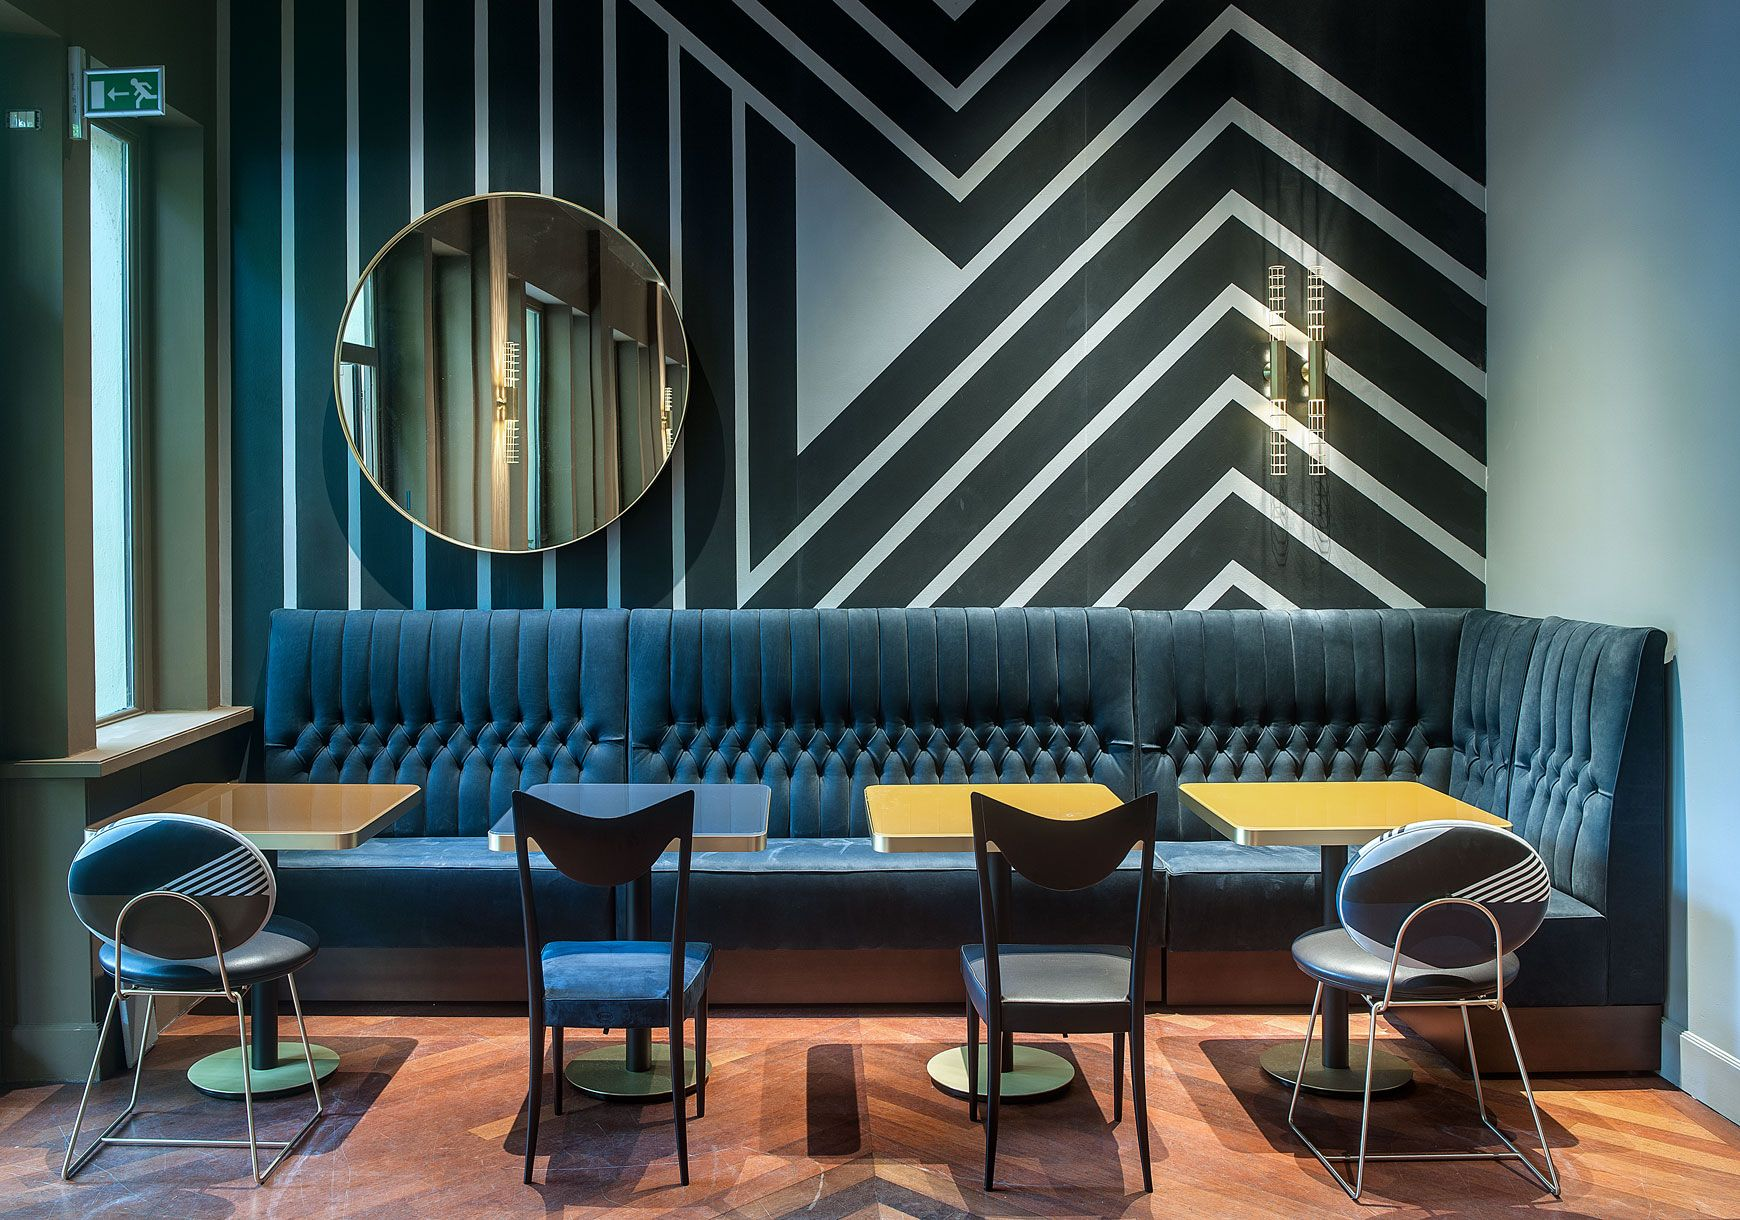 On The Occasion Of 2017 Milan Furniture Fair Baxter Presents Restyling Sheraton